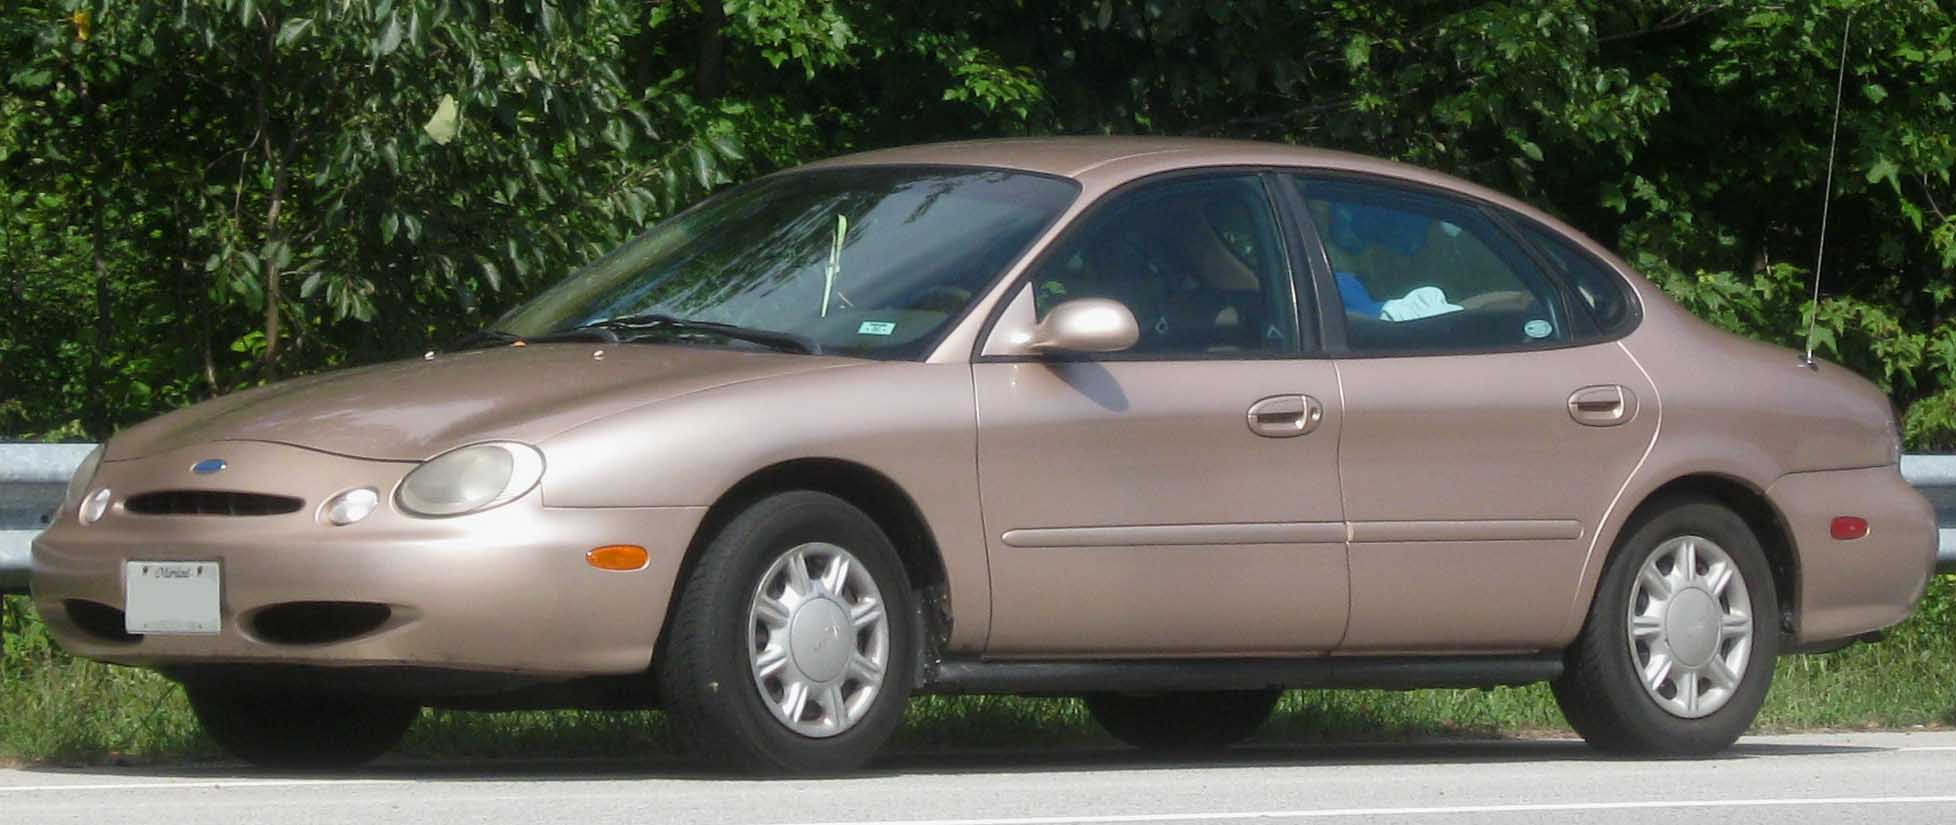 ford taurus third generation wikipedia ford taurus third generation wikipedia